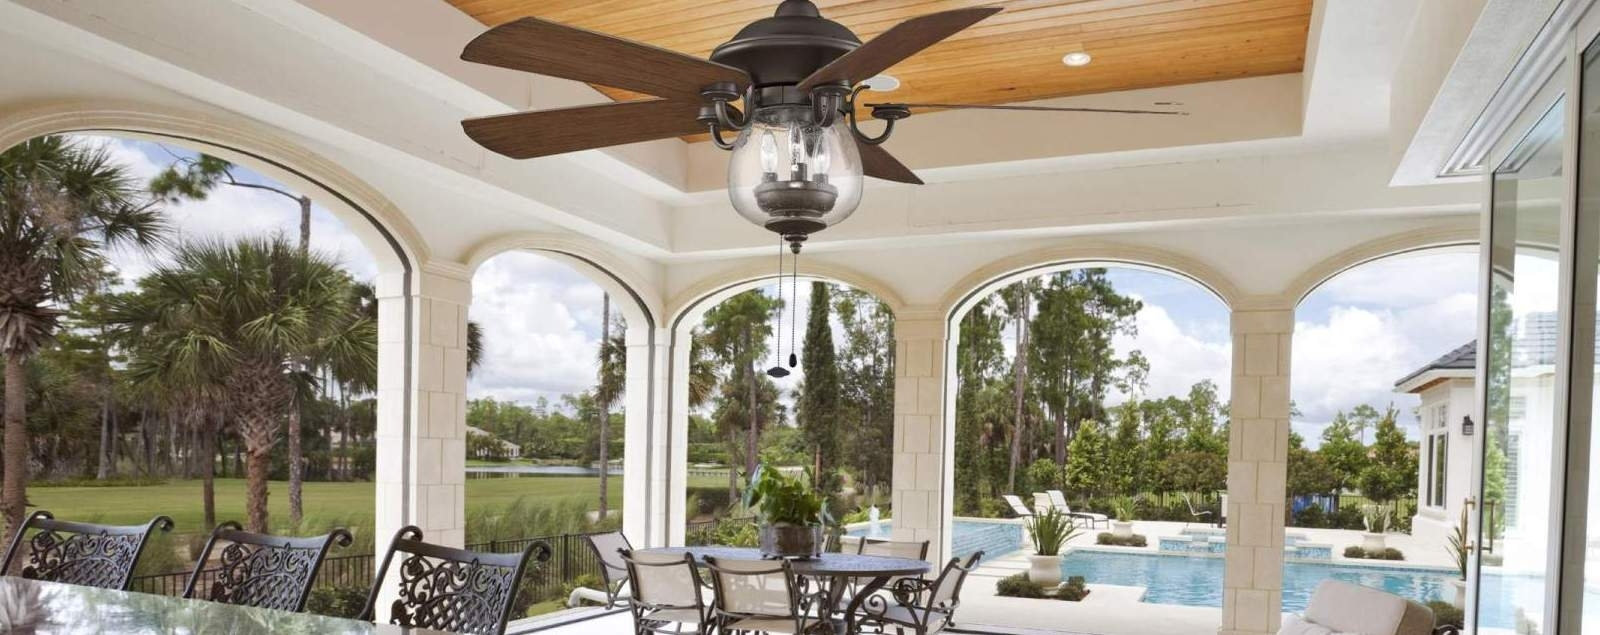 Famous Outdoor Ceiling Fans – Shop Wet, Dry, And Damp Rated Outdoor Fans Regarding Damp Rated Outdoor Ceiling Fans (View 9 of 20)